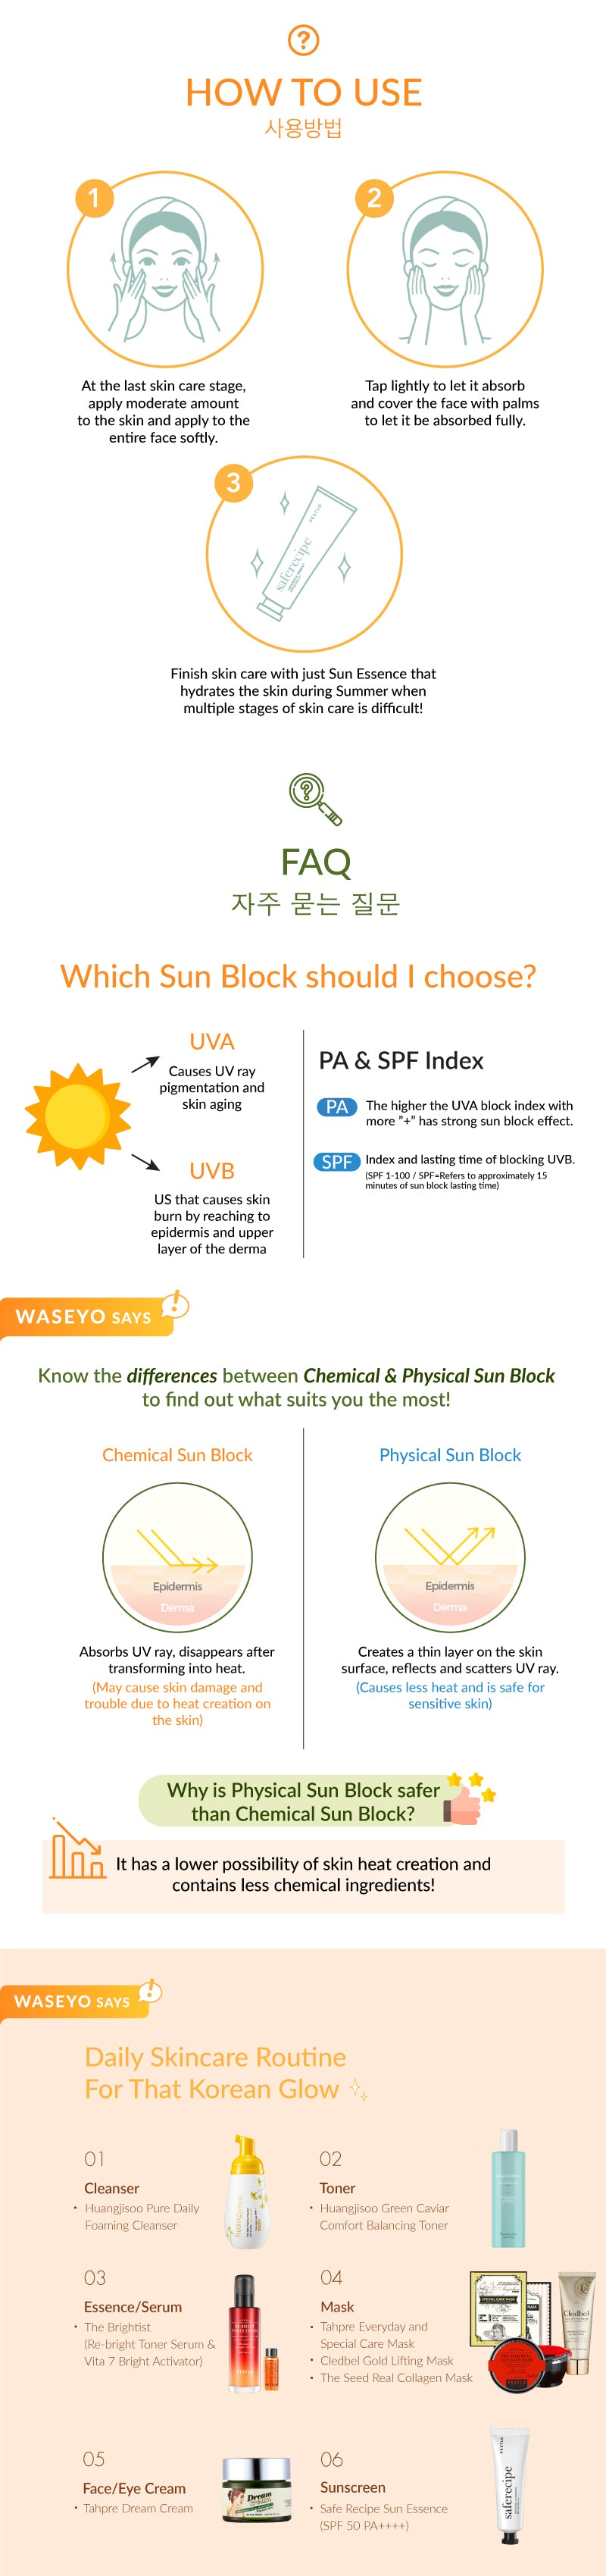 Here is How to use the sun block! You can simply apply it as the last step of your skincare and tap it to absorb into your skin!